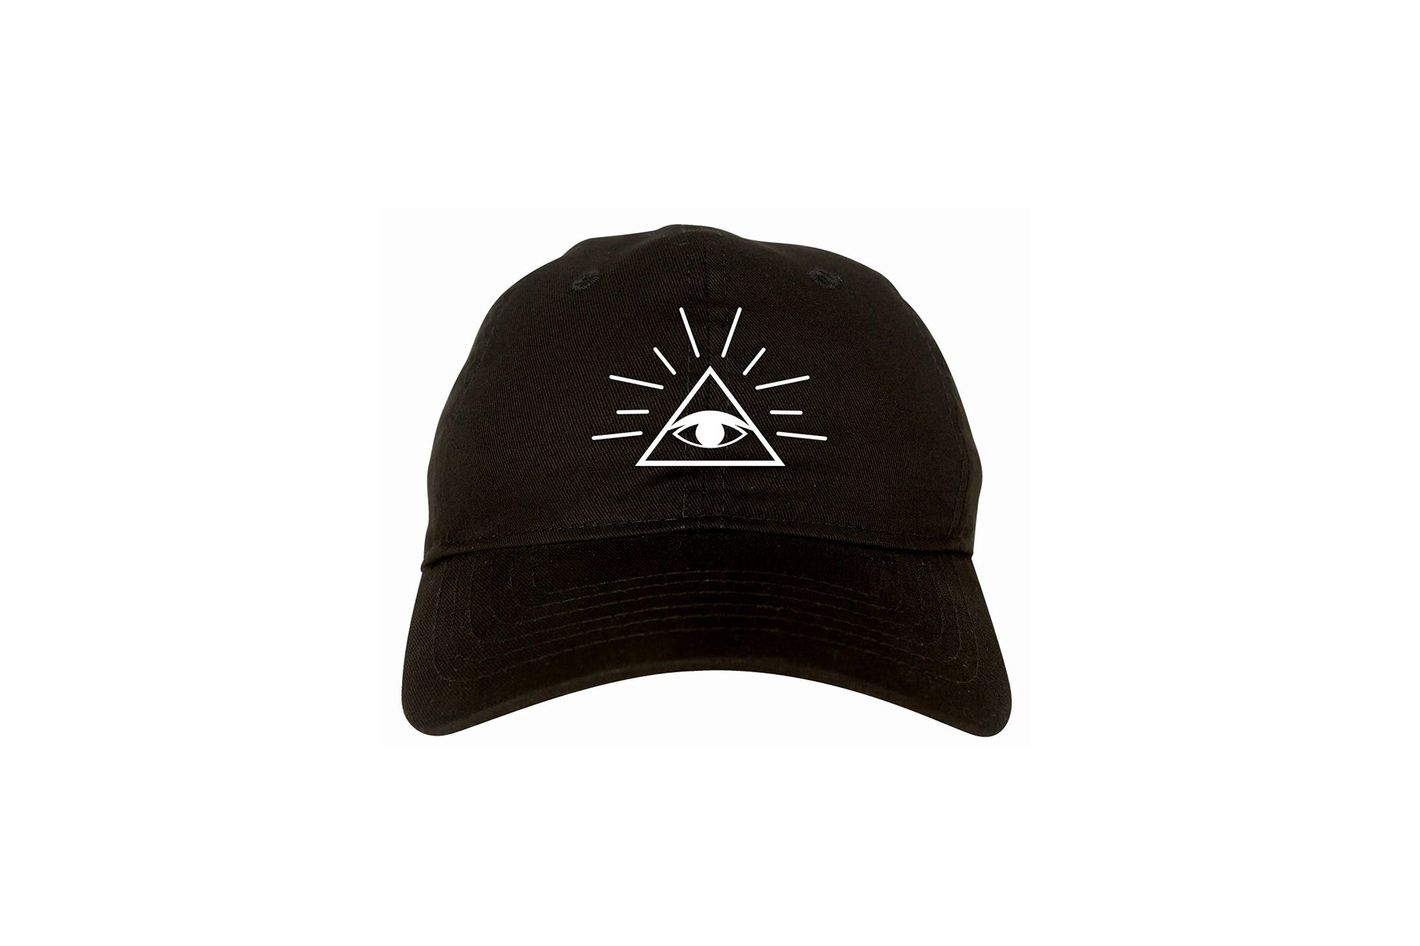 Illuminati Dad Cap